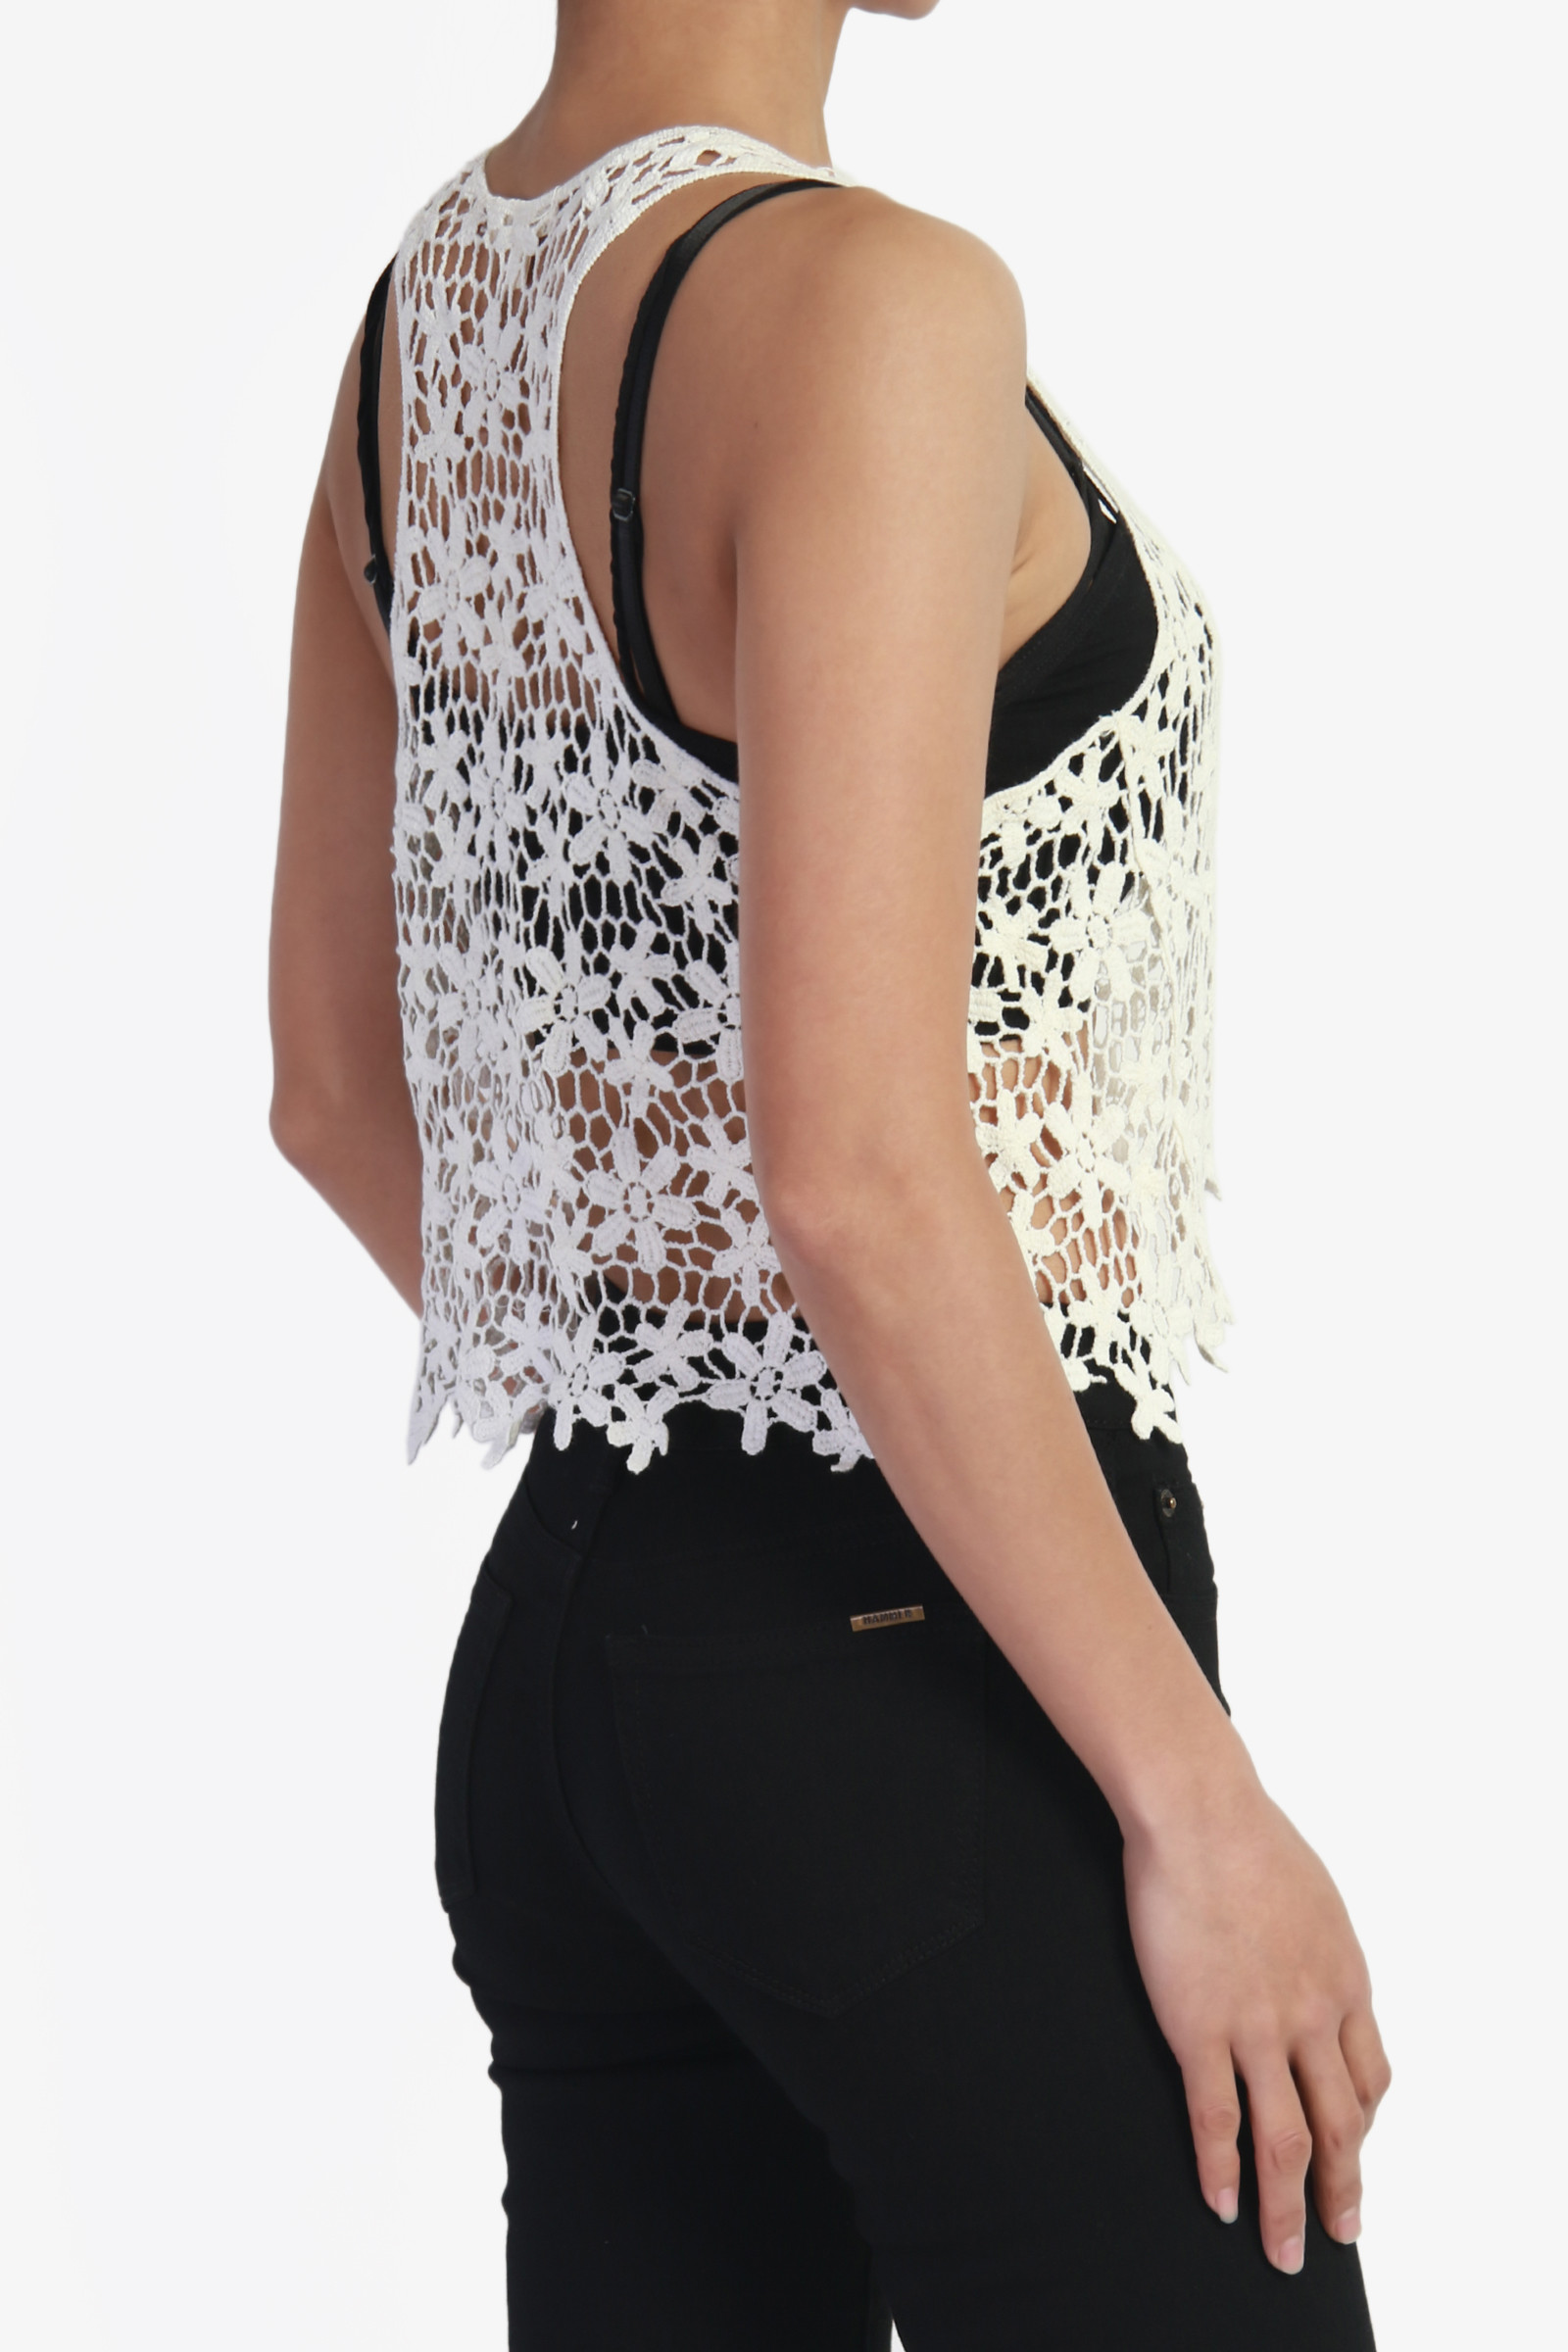 Crochet Lace Tank top Awesome themogan Women S Crochet Lace Sheer Cotton Crop Tank top Of Incredible 41 Images Crochet Lace Tank top